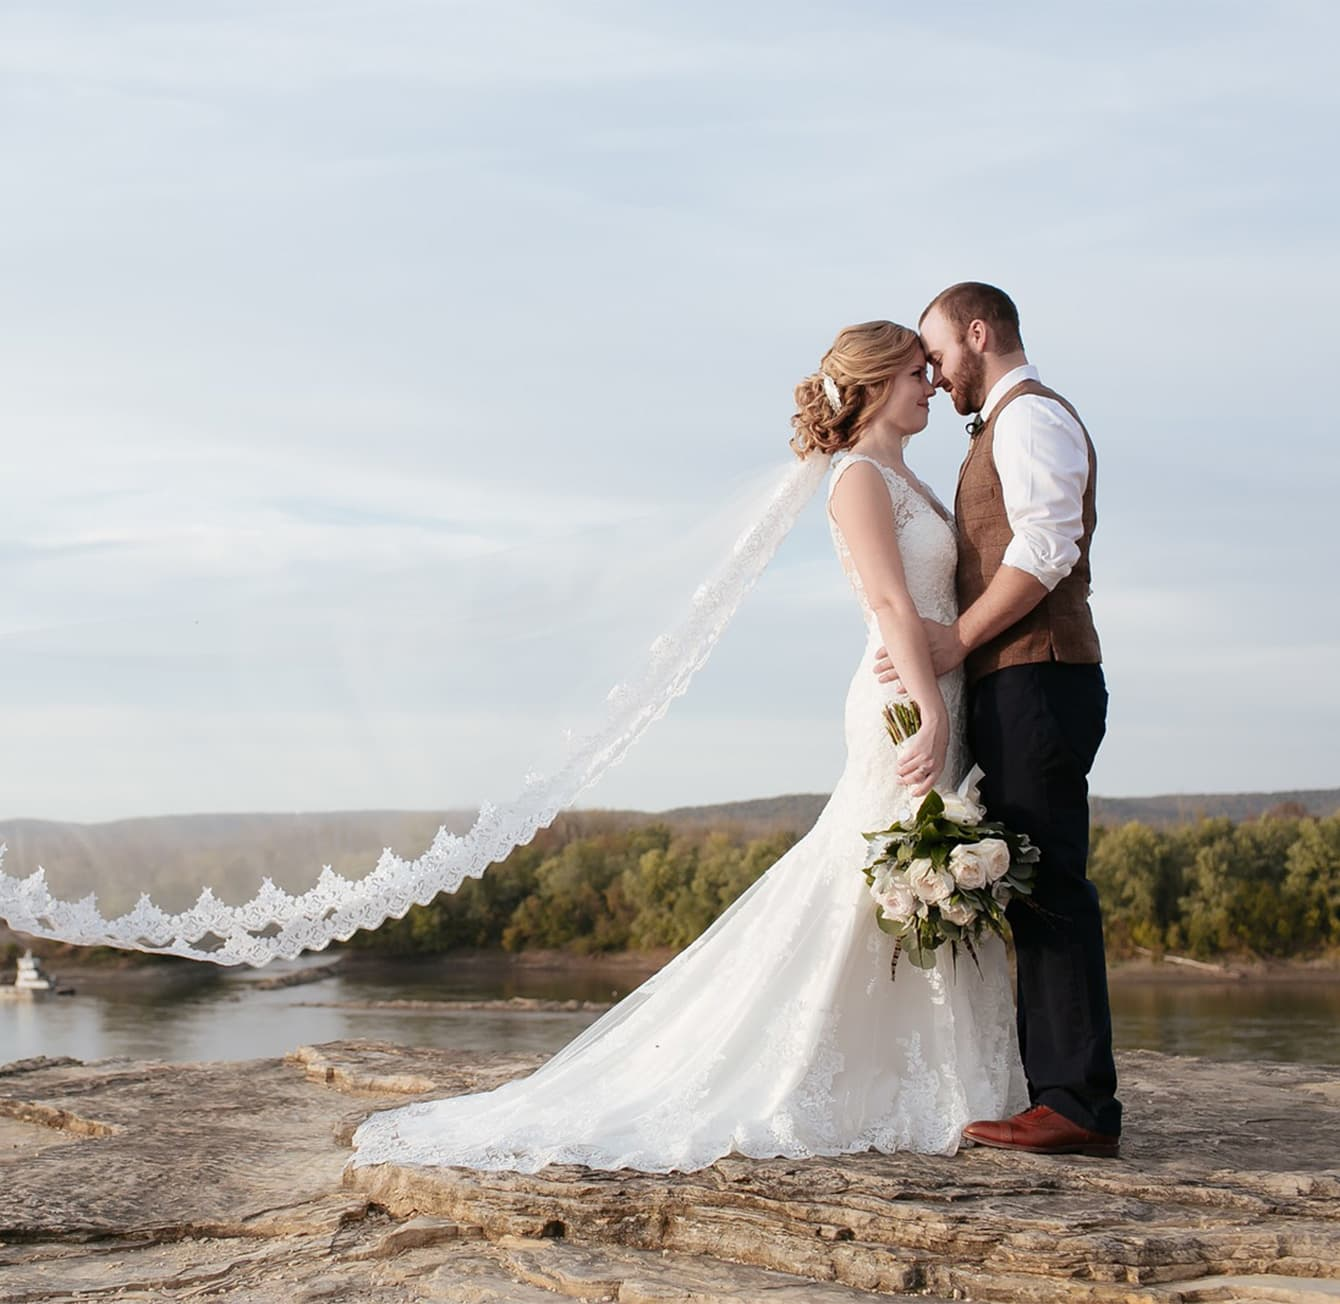 Wedding couple standing on a stone in front of a river